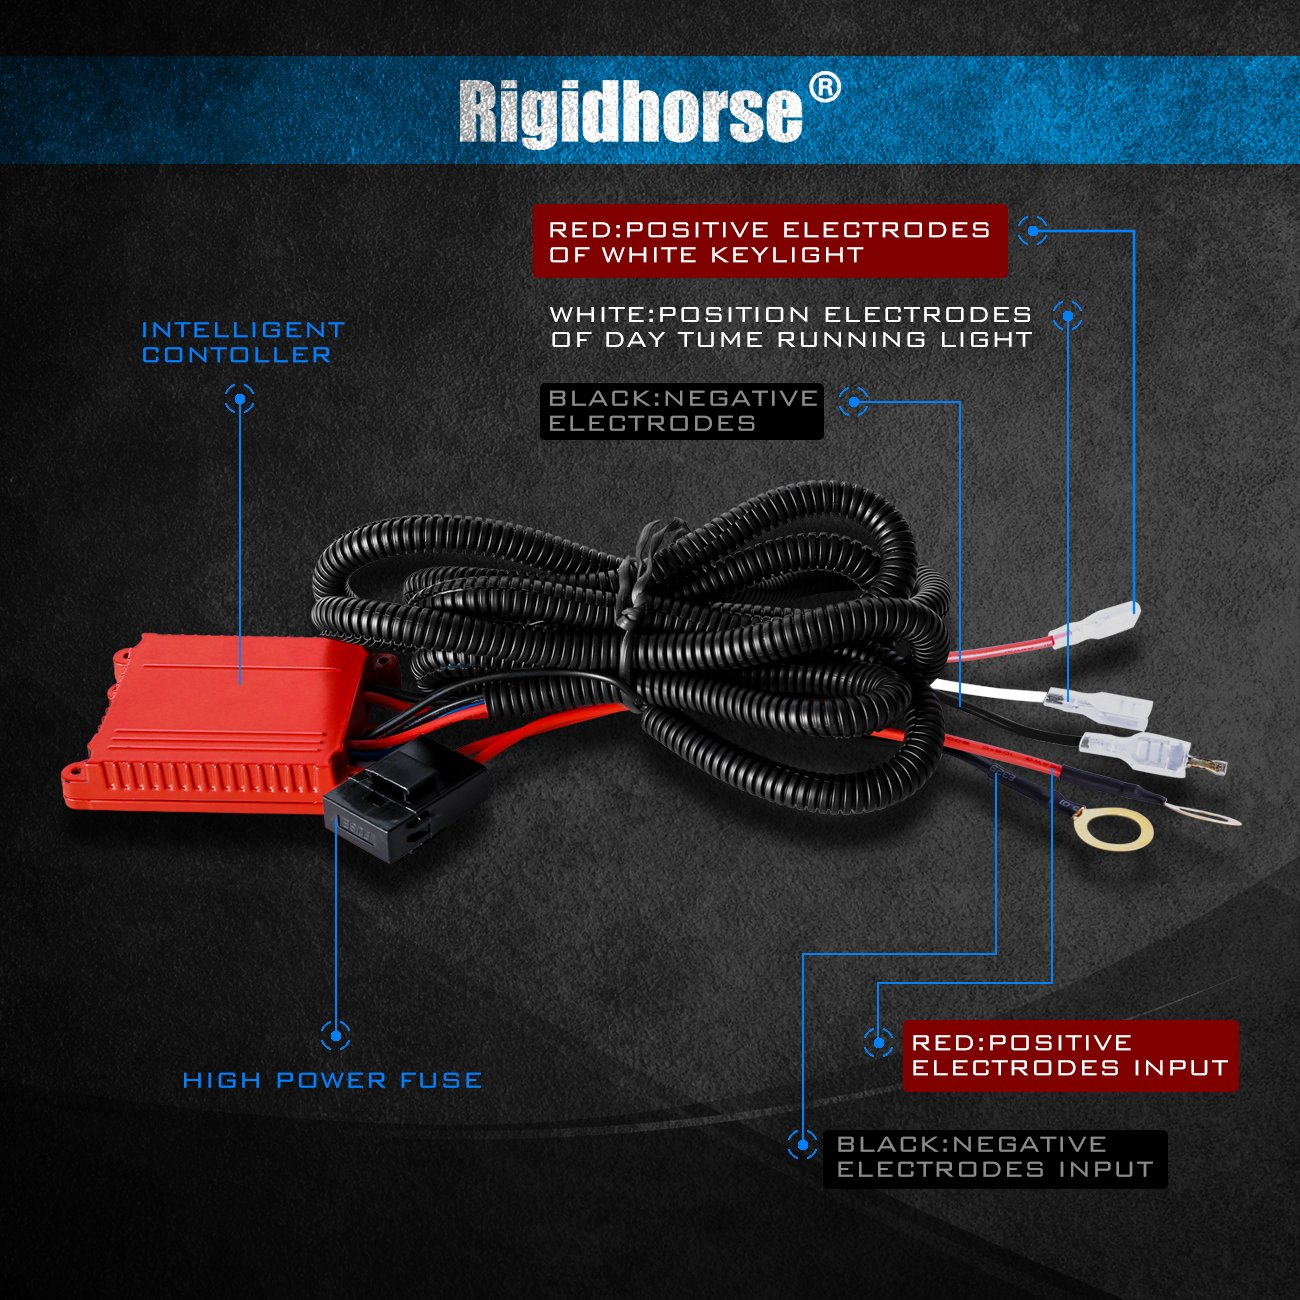 Wiring Harness Rigidhorse Remote Control Nash Travel Trailer Diagrams Kit For 8d Dual Mode Led Light Bar Universal Fitment Accessories Automotive